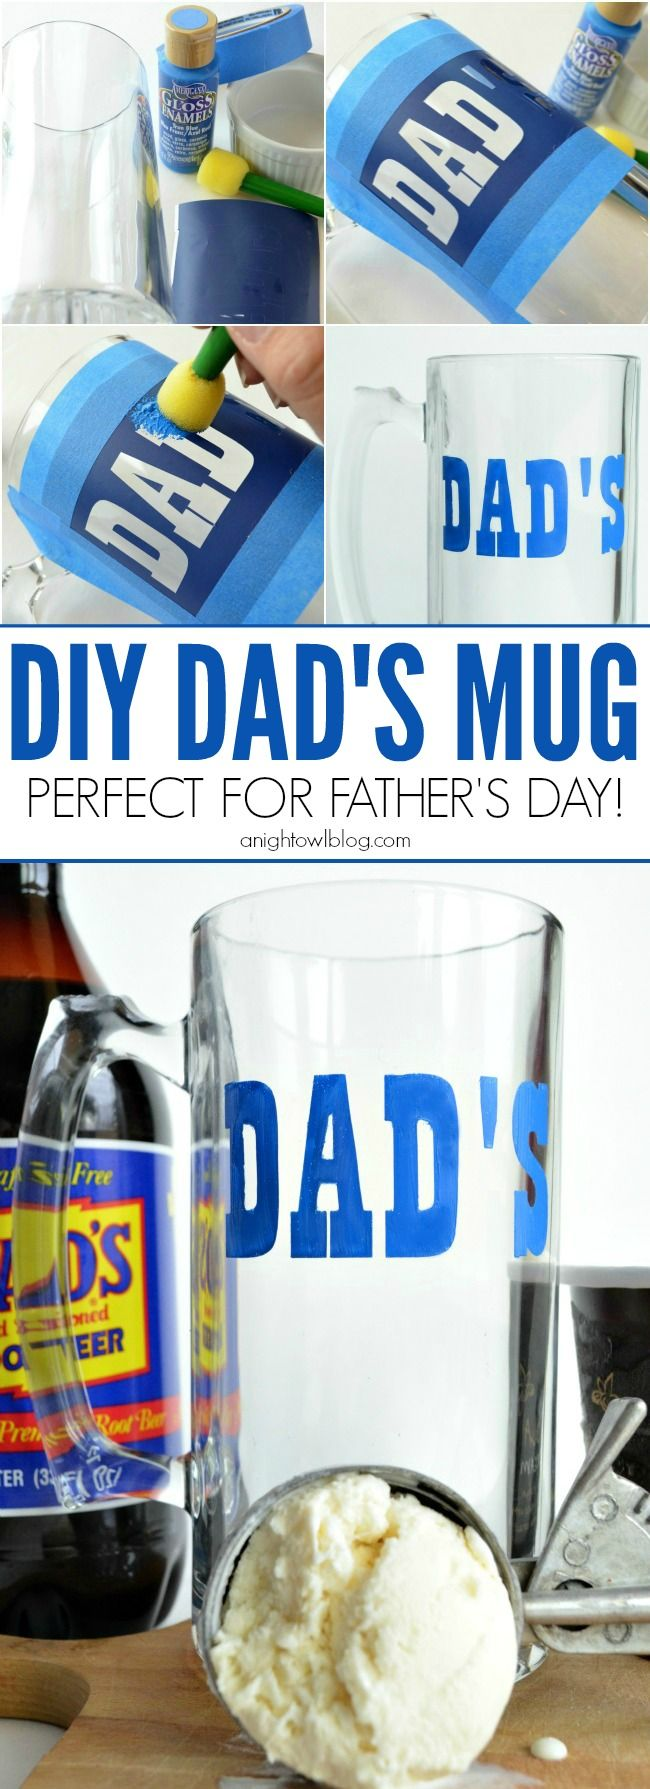 26 best diy father s day gifts images on pinterest creative ideas